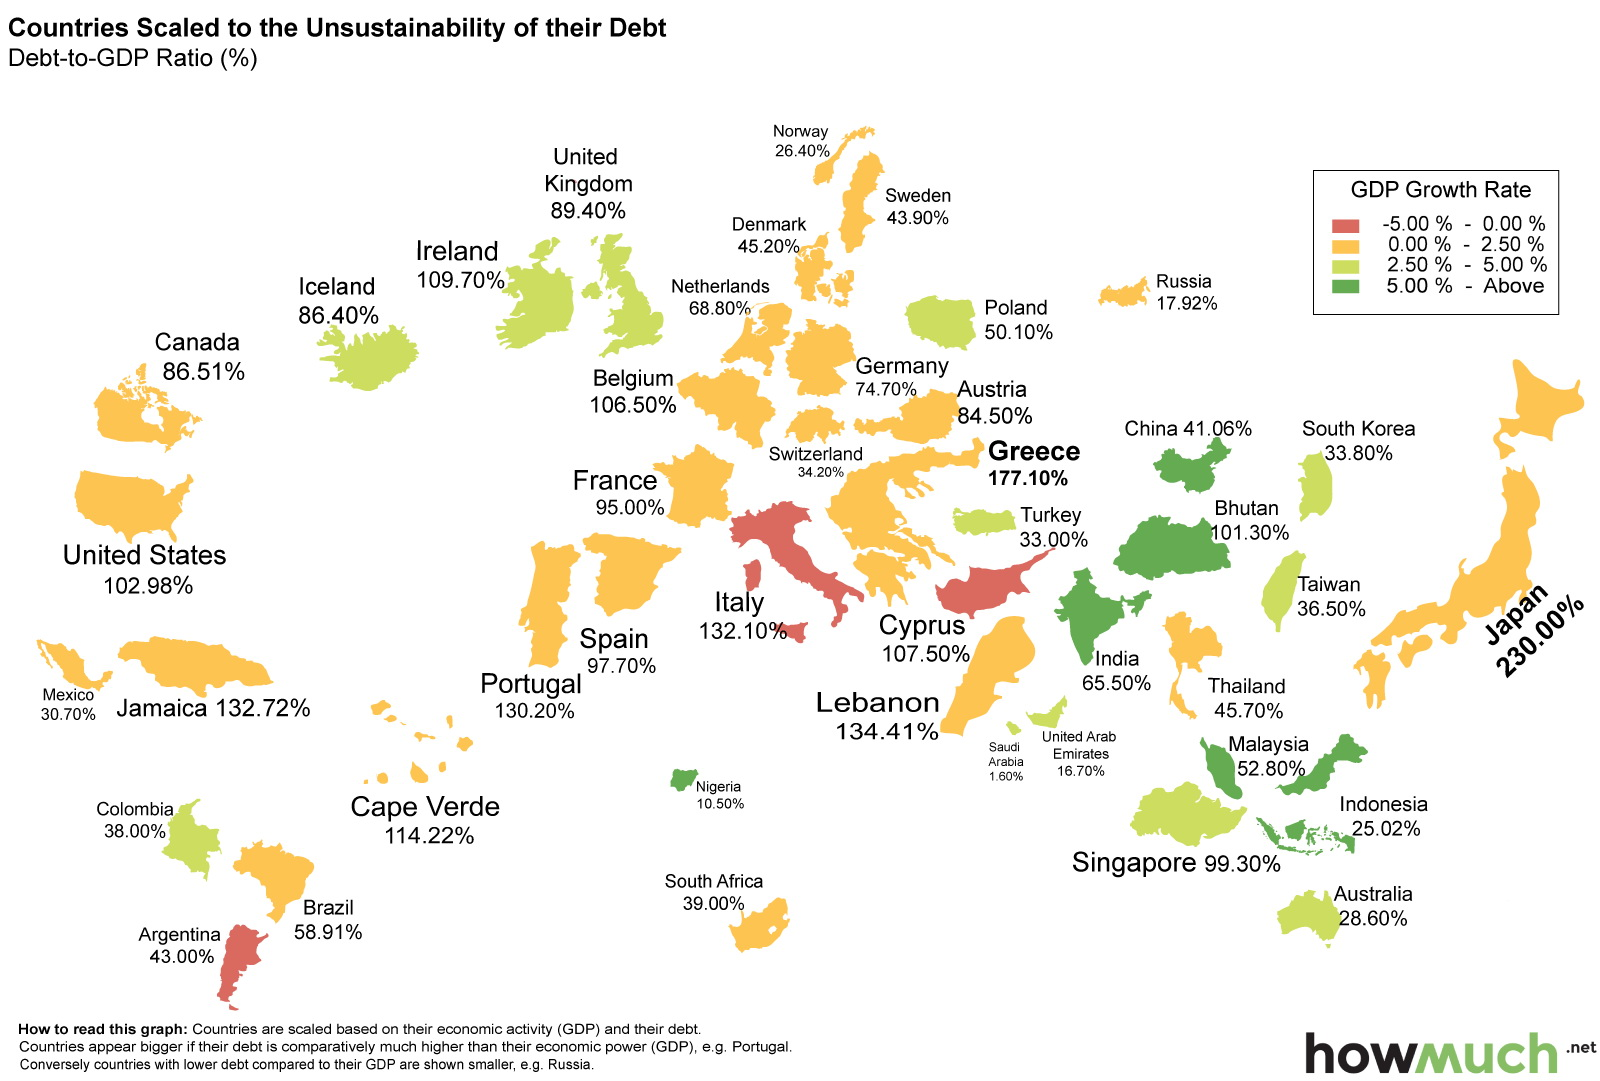 Countries scaled to the unsustainability of their debt